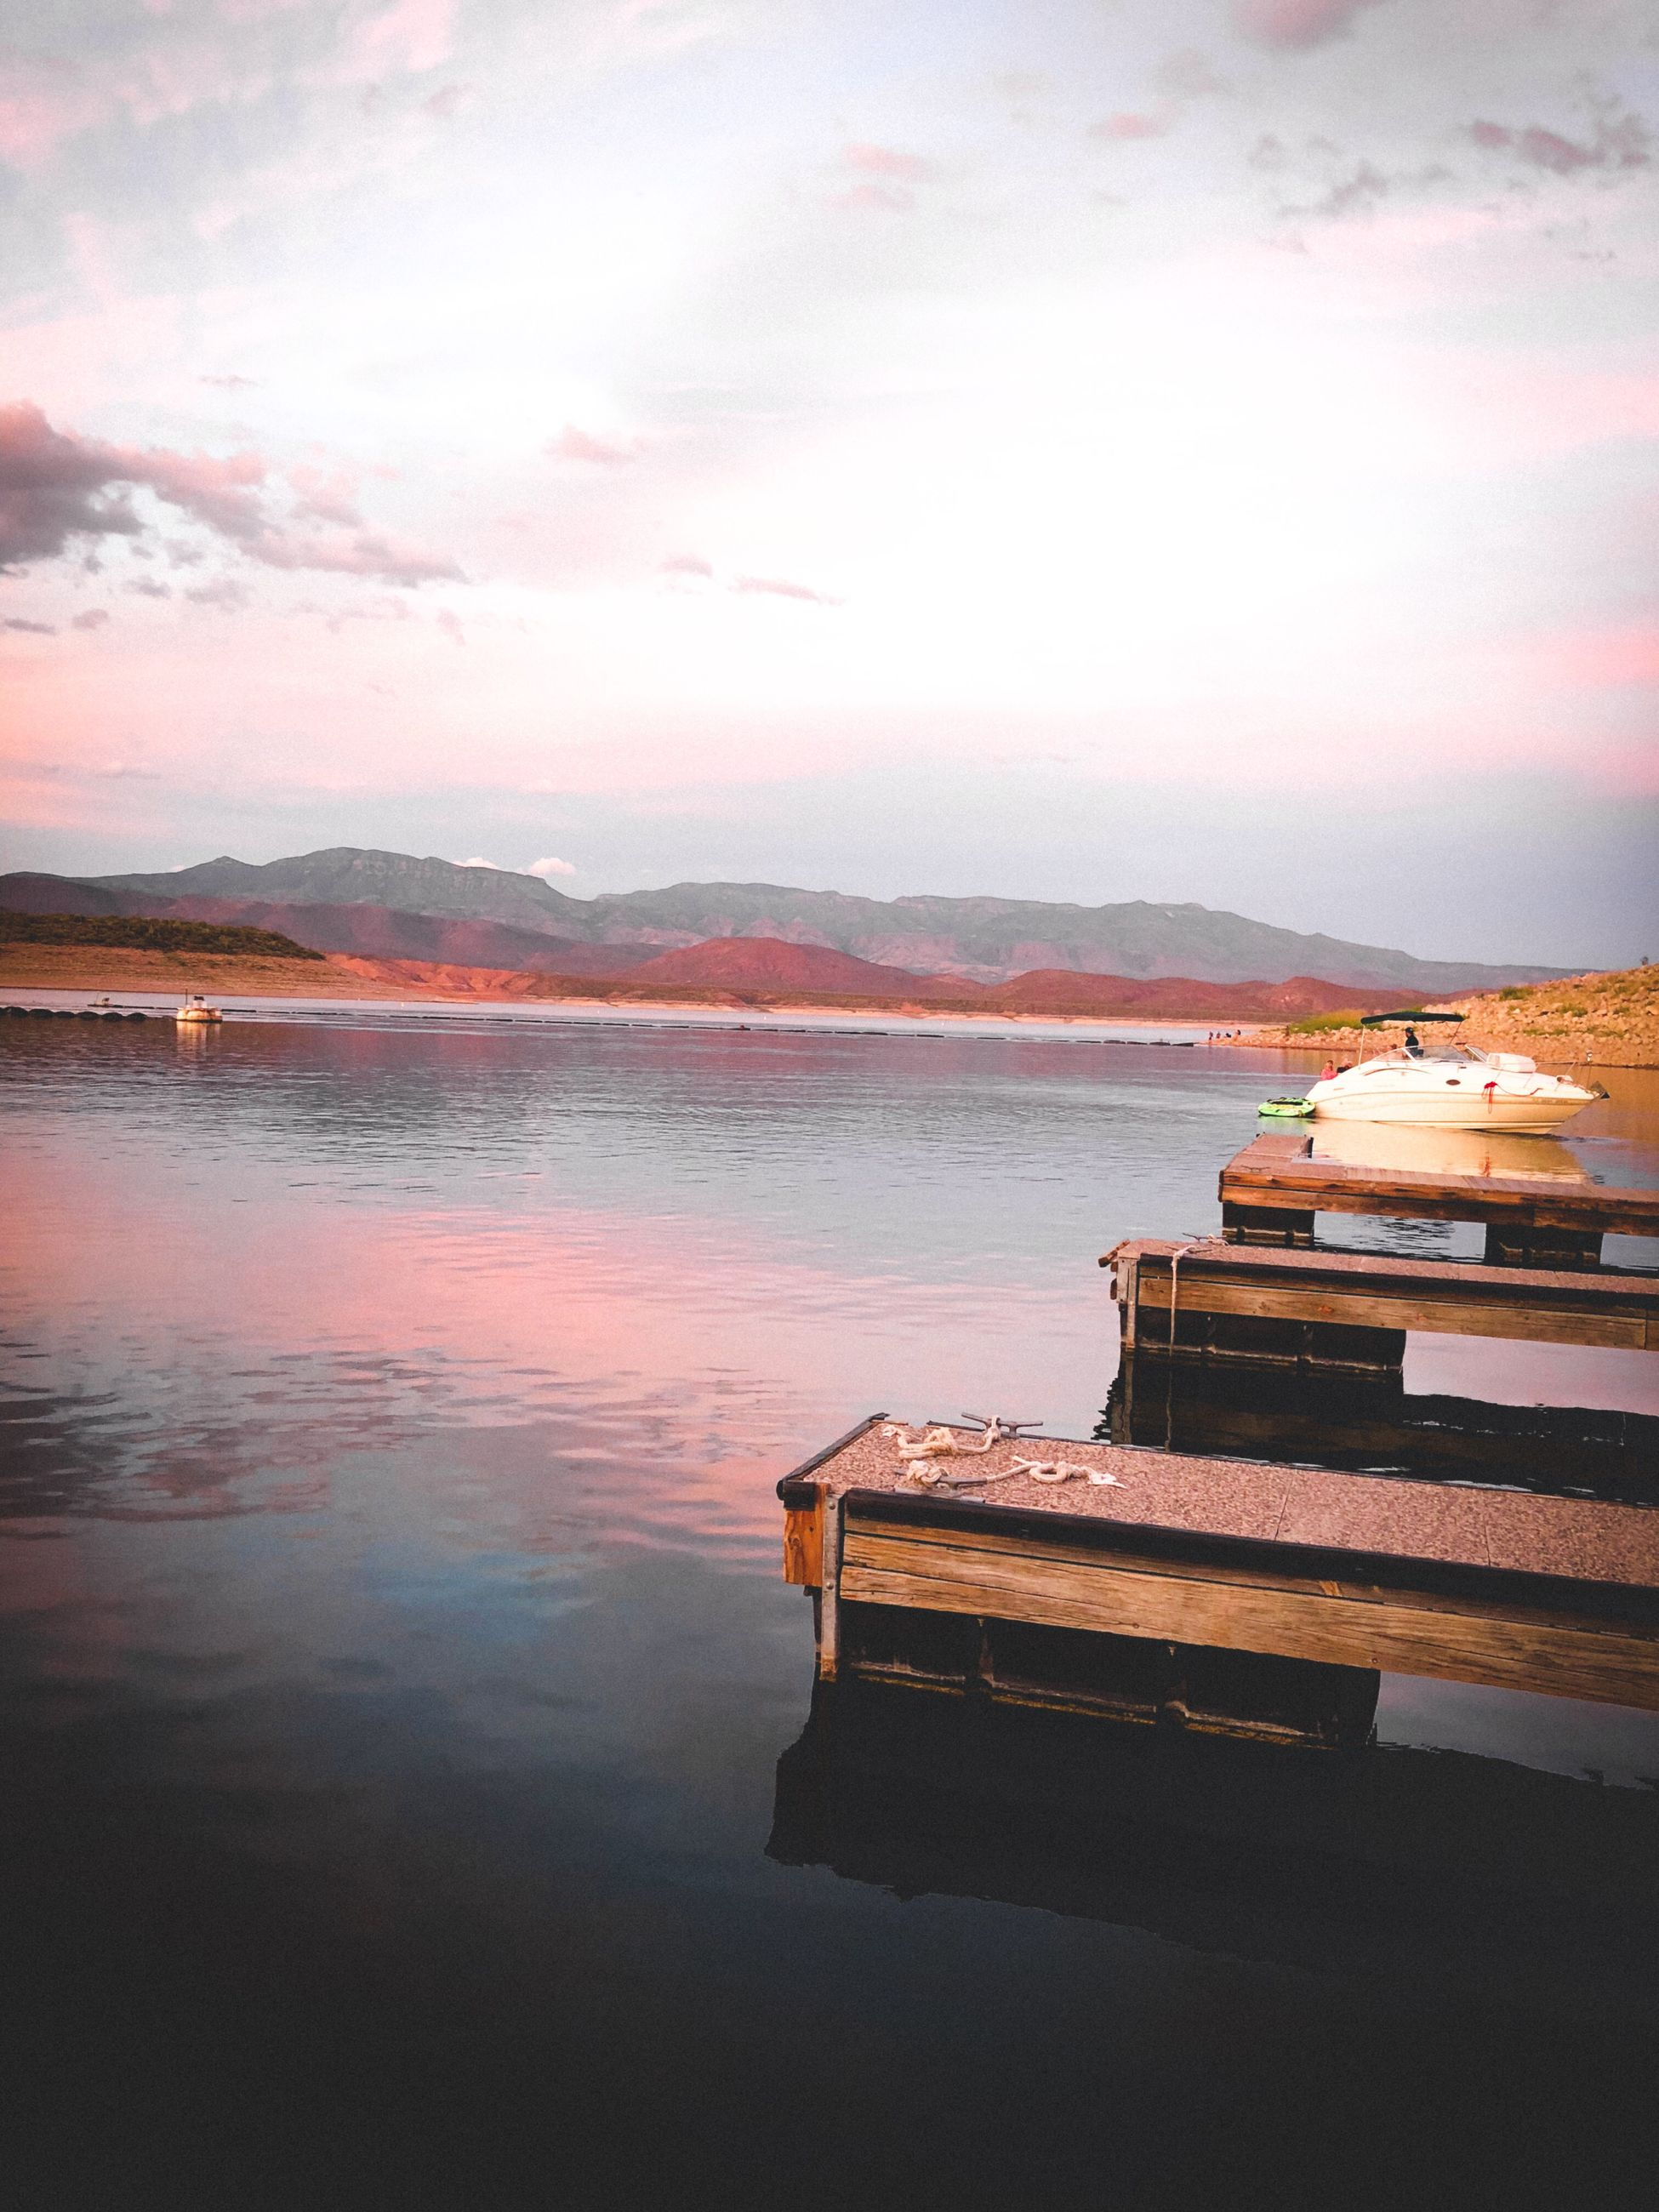 water, sky, cloud - sky, nautical vessel, tranquility, sunset, nature, tranquil scene, beauty in nature, reflection, transportation, scenics - nature, lake, no people, mode of transportation, mountain, outdoors, moored, passenger craft